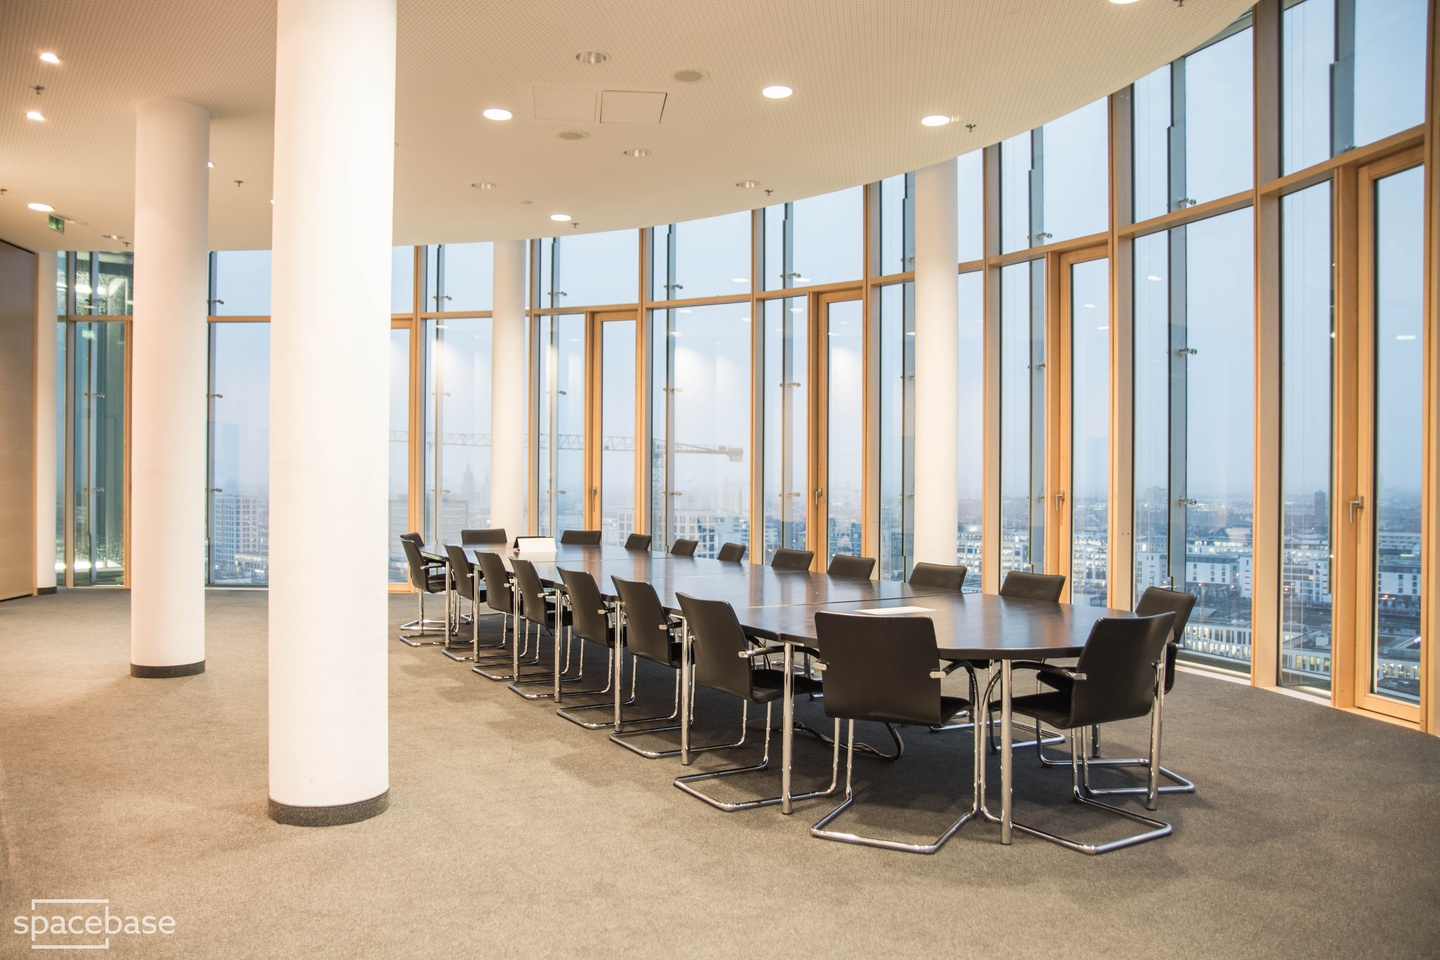 Munich training rooms Salle de réunion 360 grad tower small conference room image 4